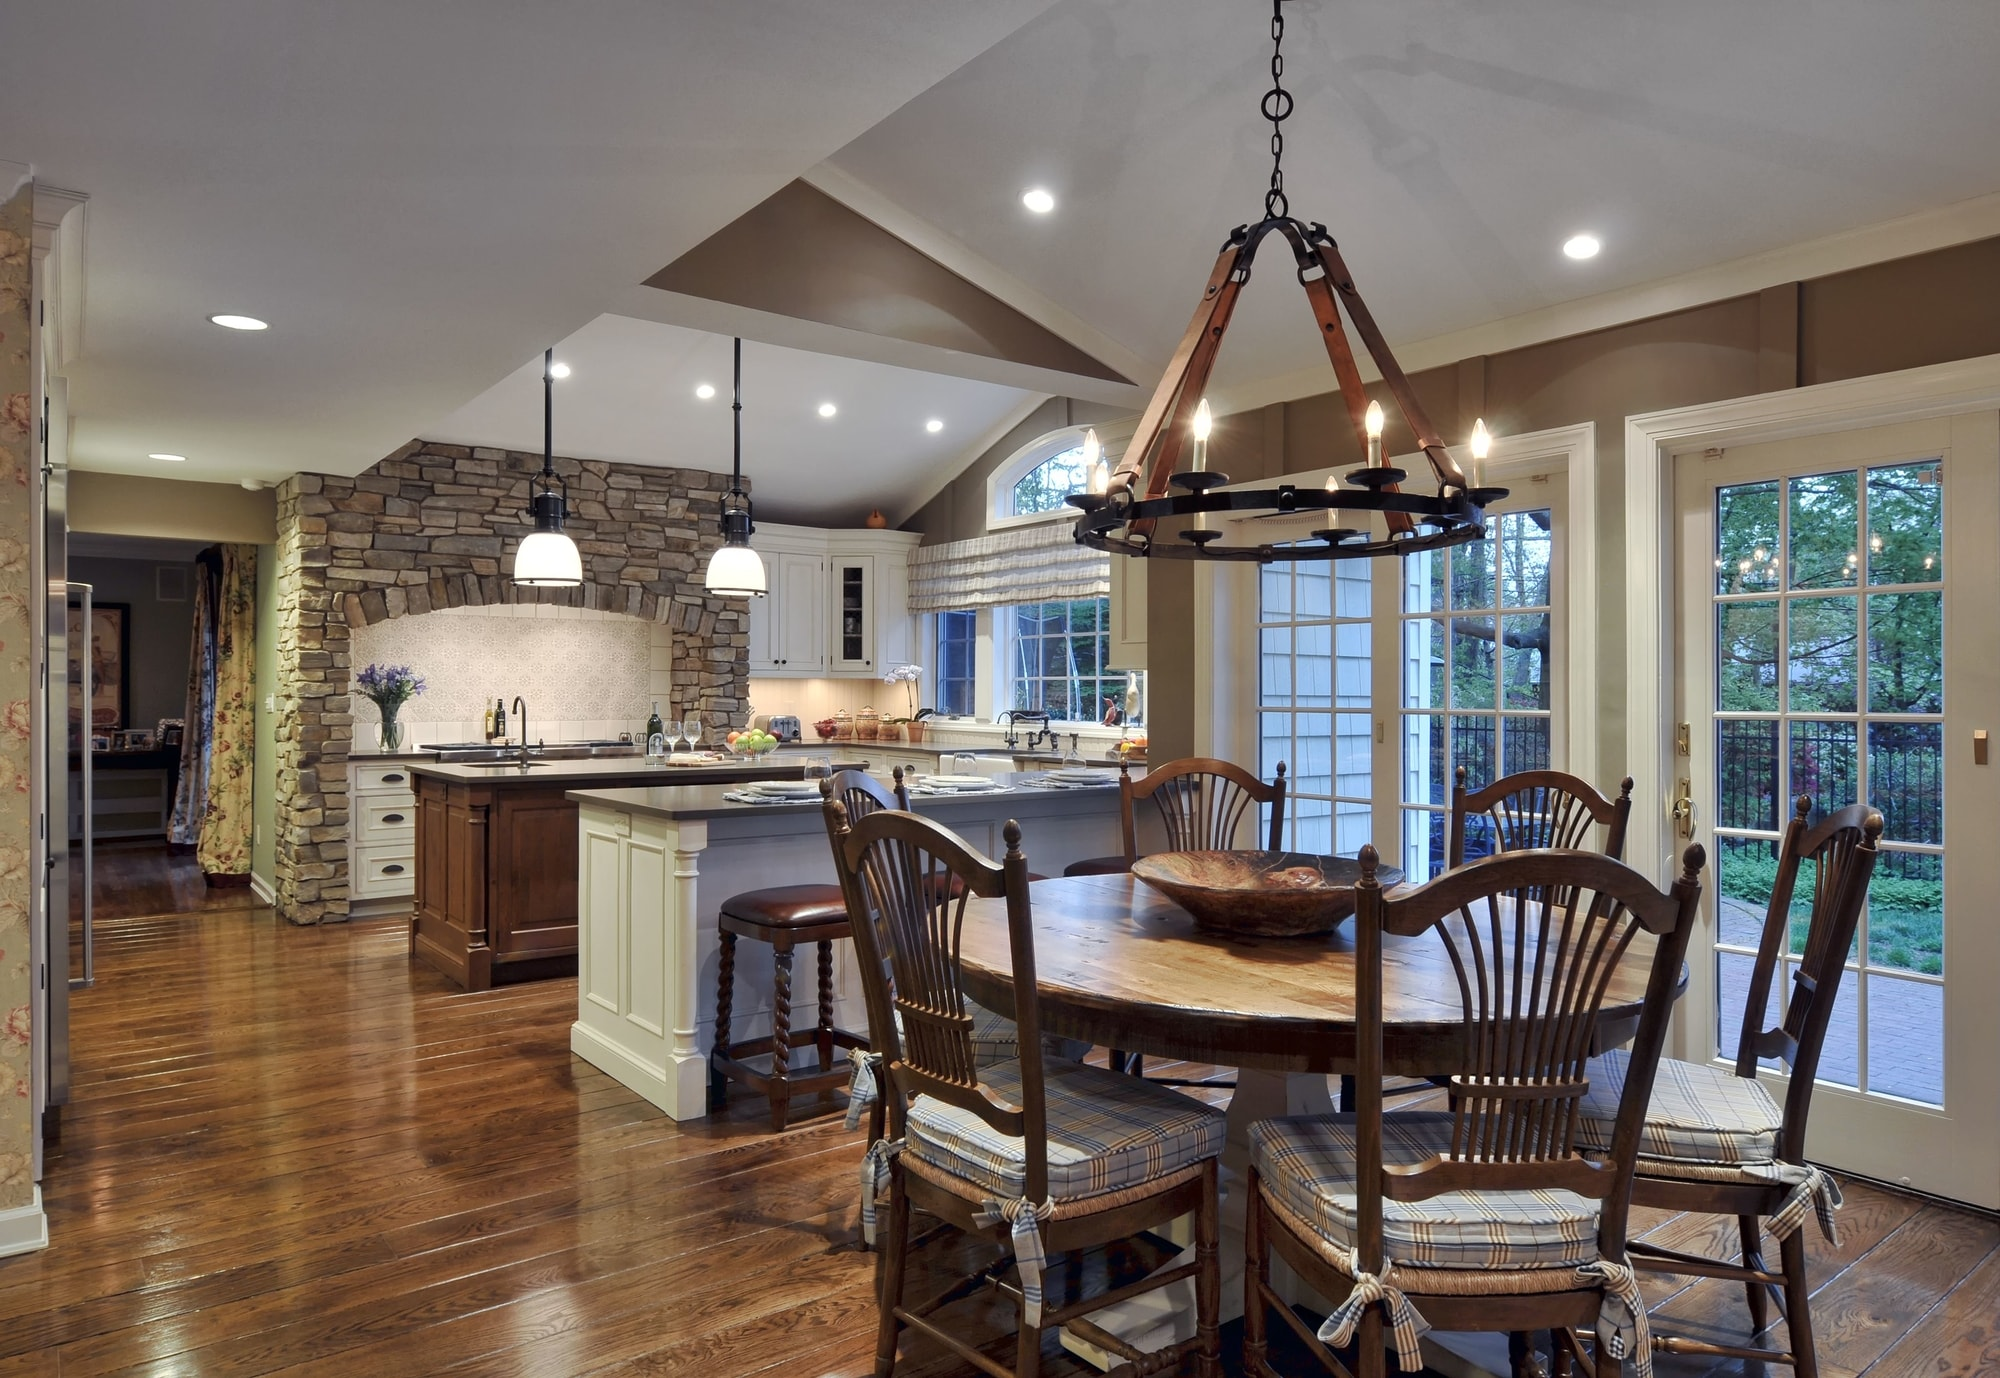 Traditional style kitchen with round breakfast table